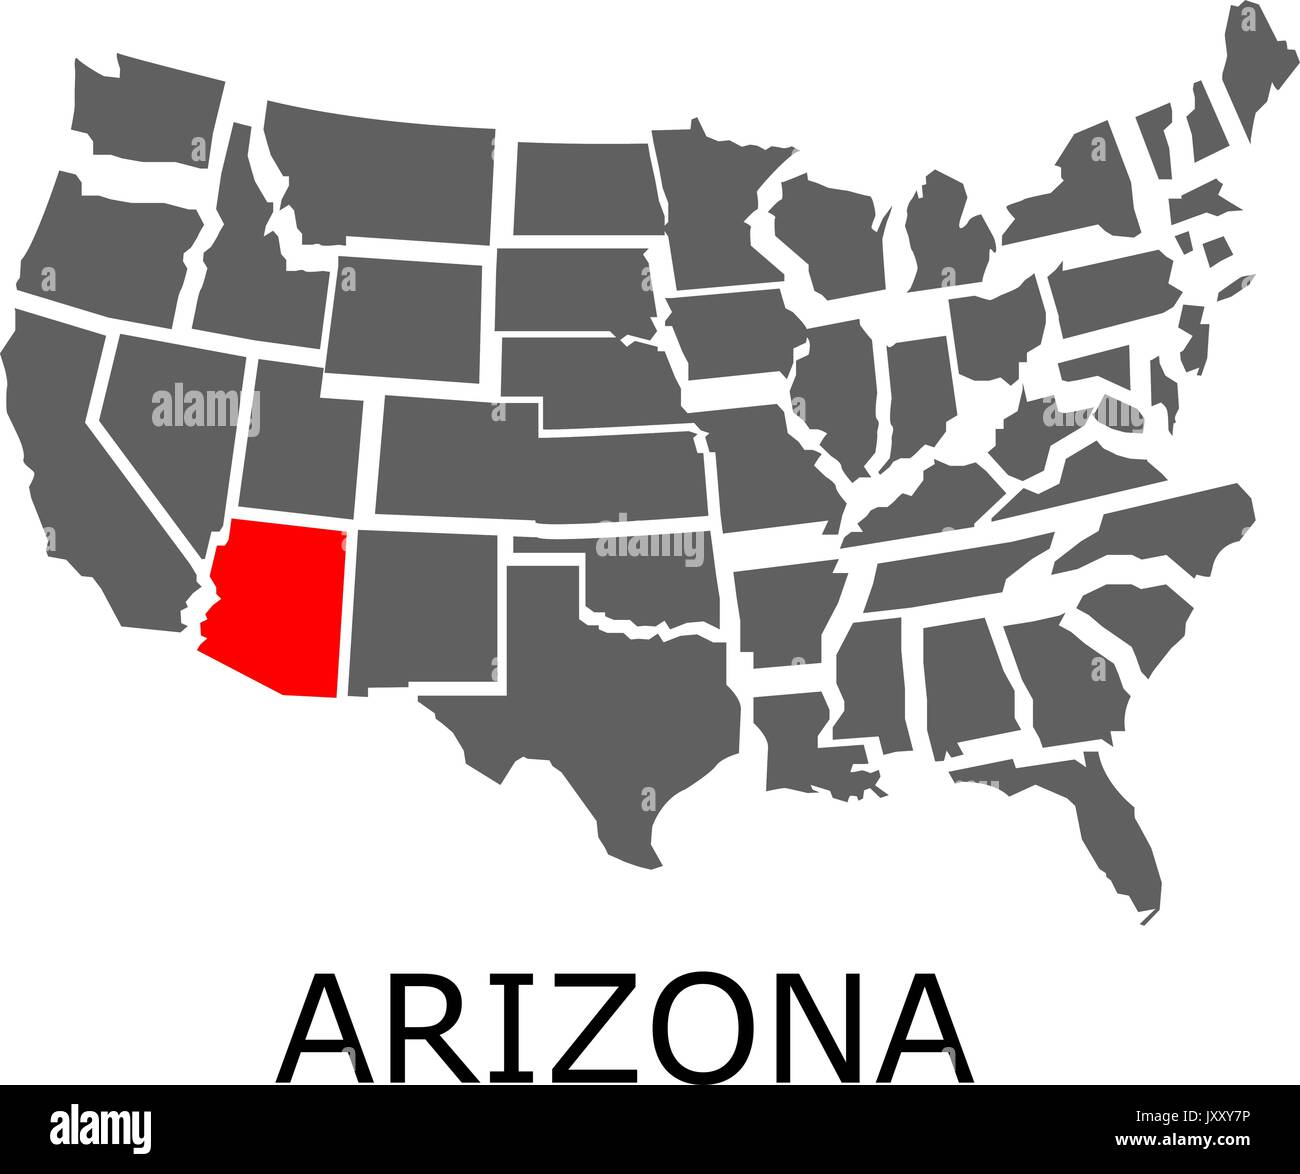 Arizona On A Map Of Usa.Bordering Map Of Usa With State Of Arizona Marked With Red Color